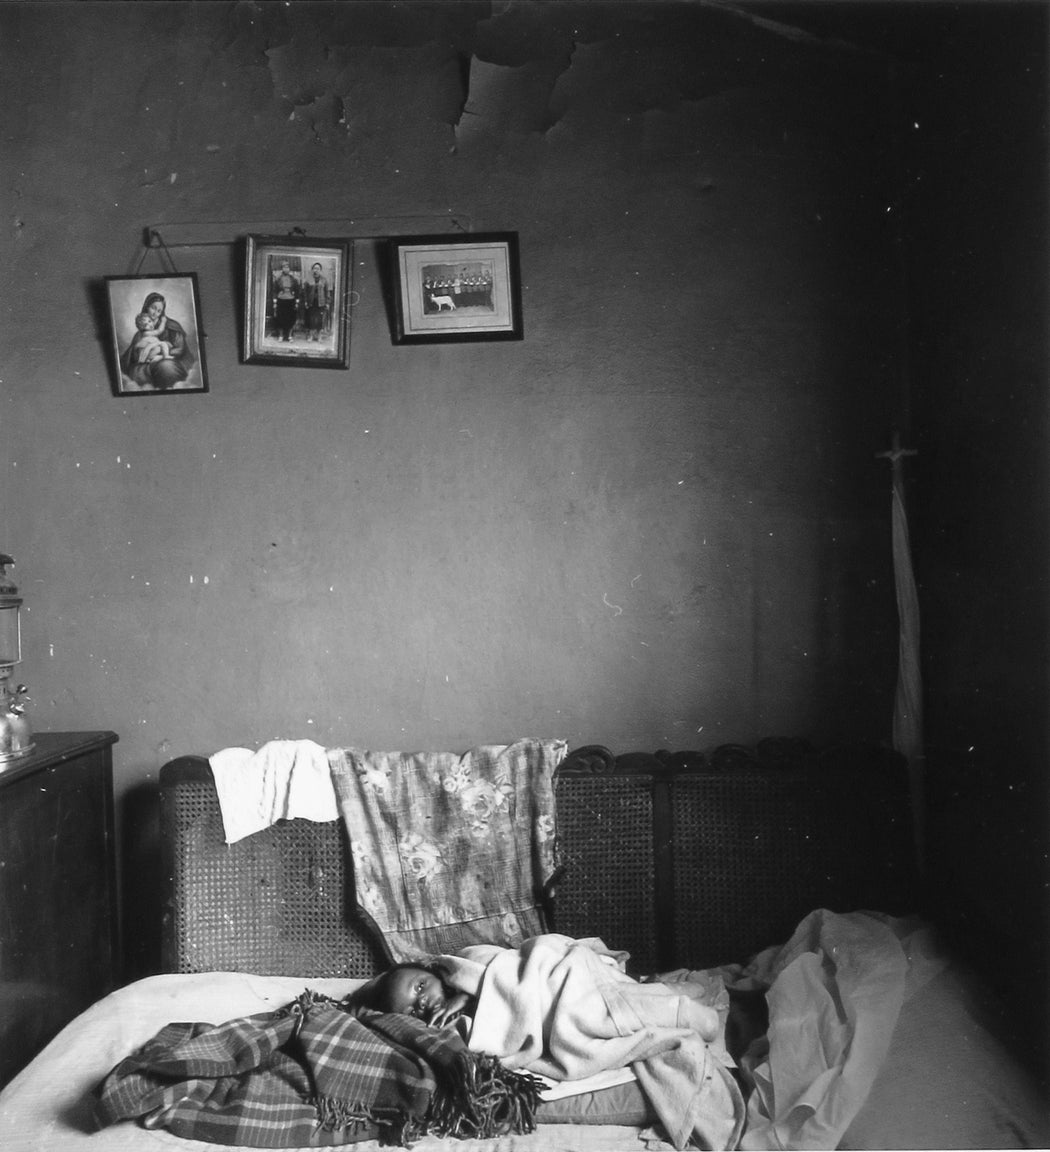 Untitled [Child on bed]